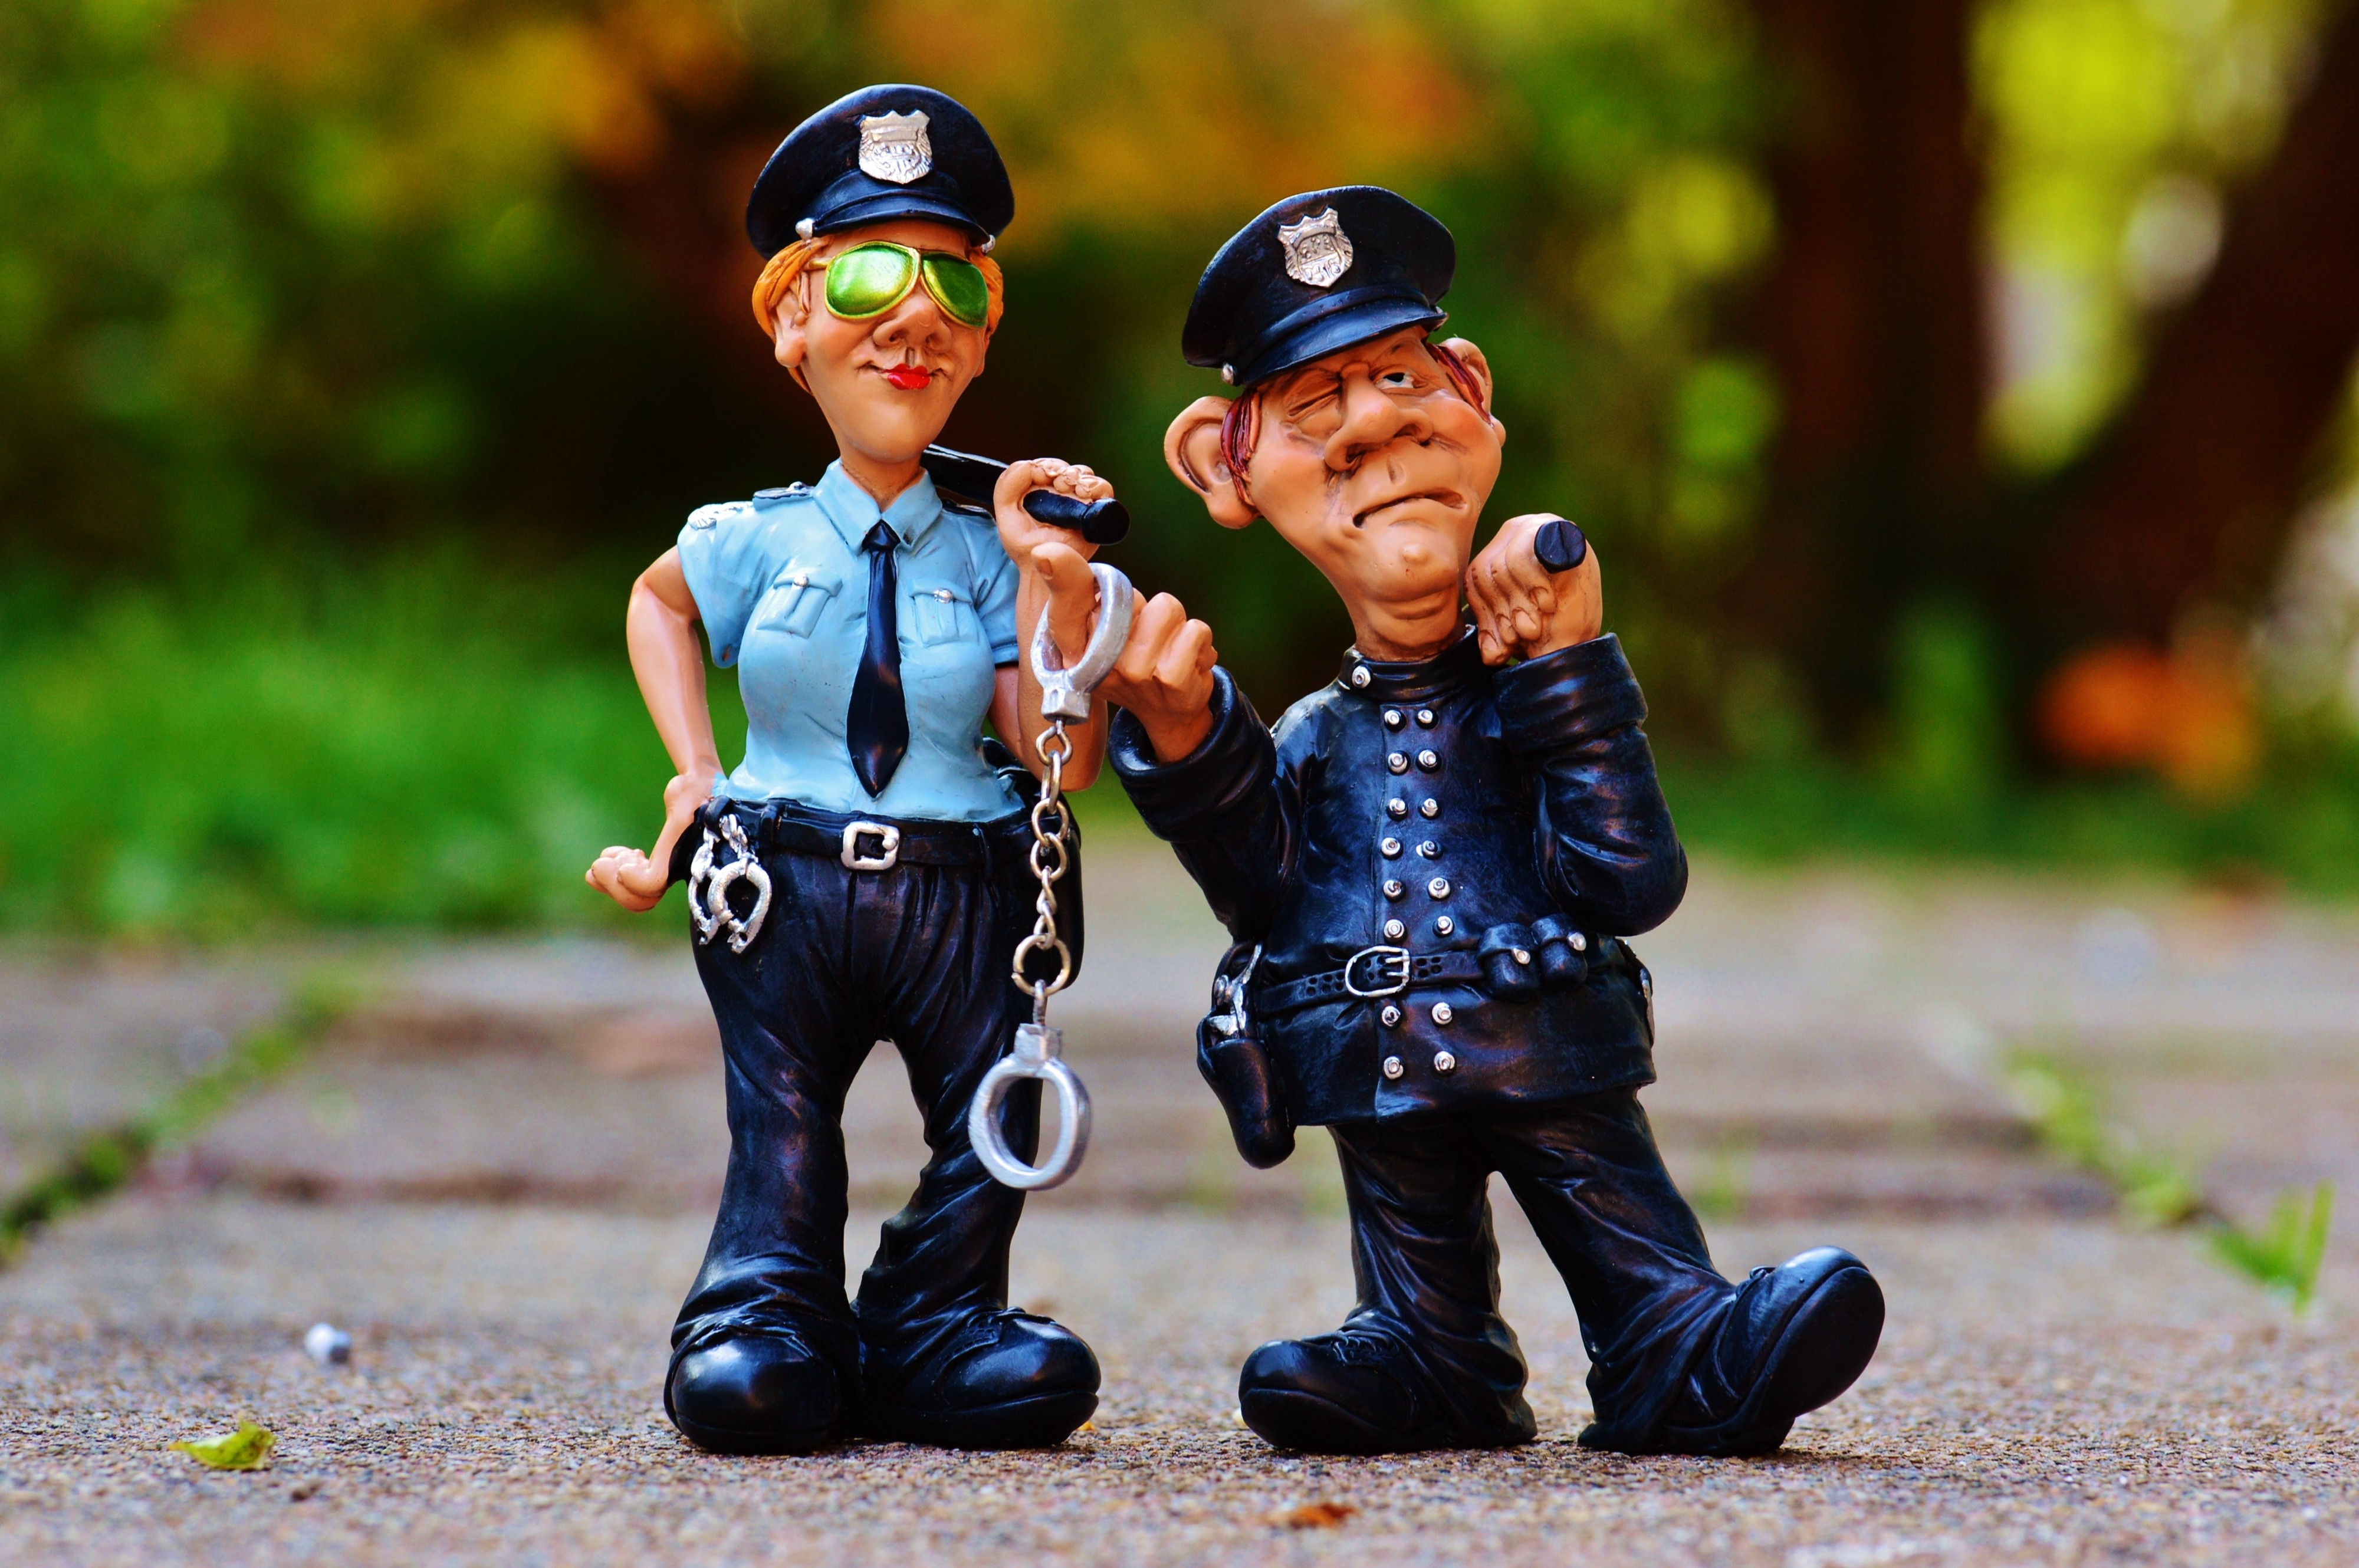 Police Man and Police Woman Plastic Toy